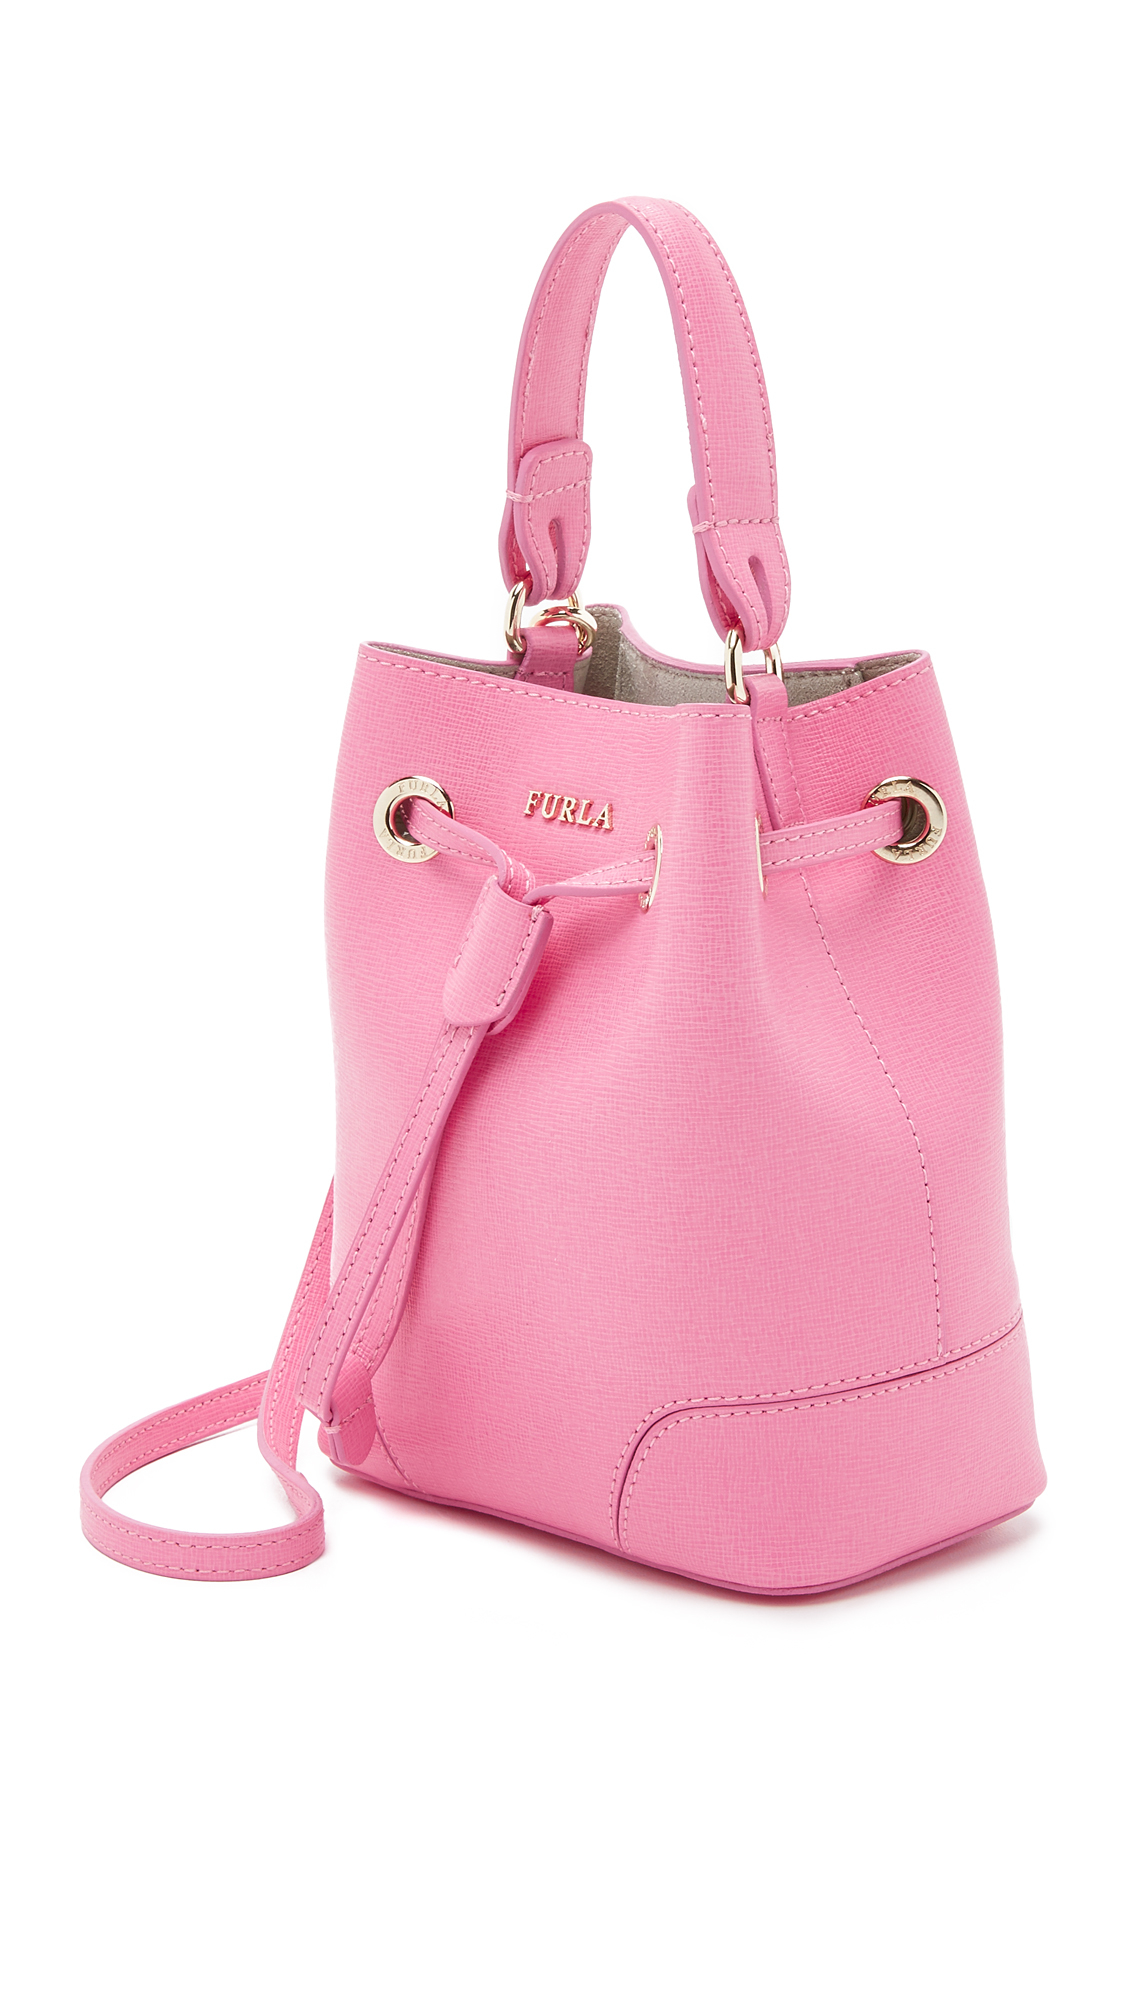 Lyst Furla Stacy Mini Drawstring Bucket Bag In Pink